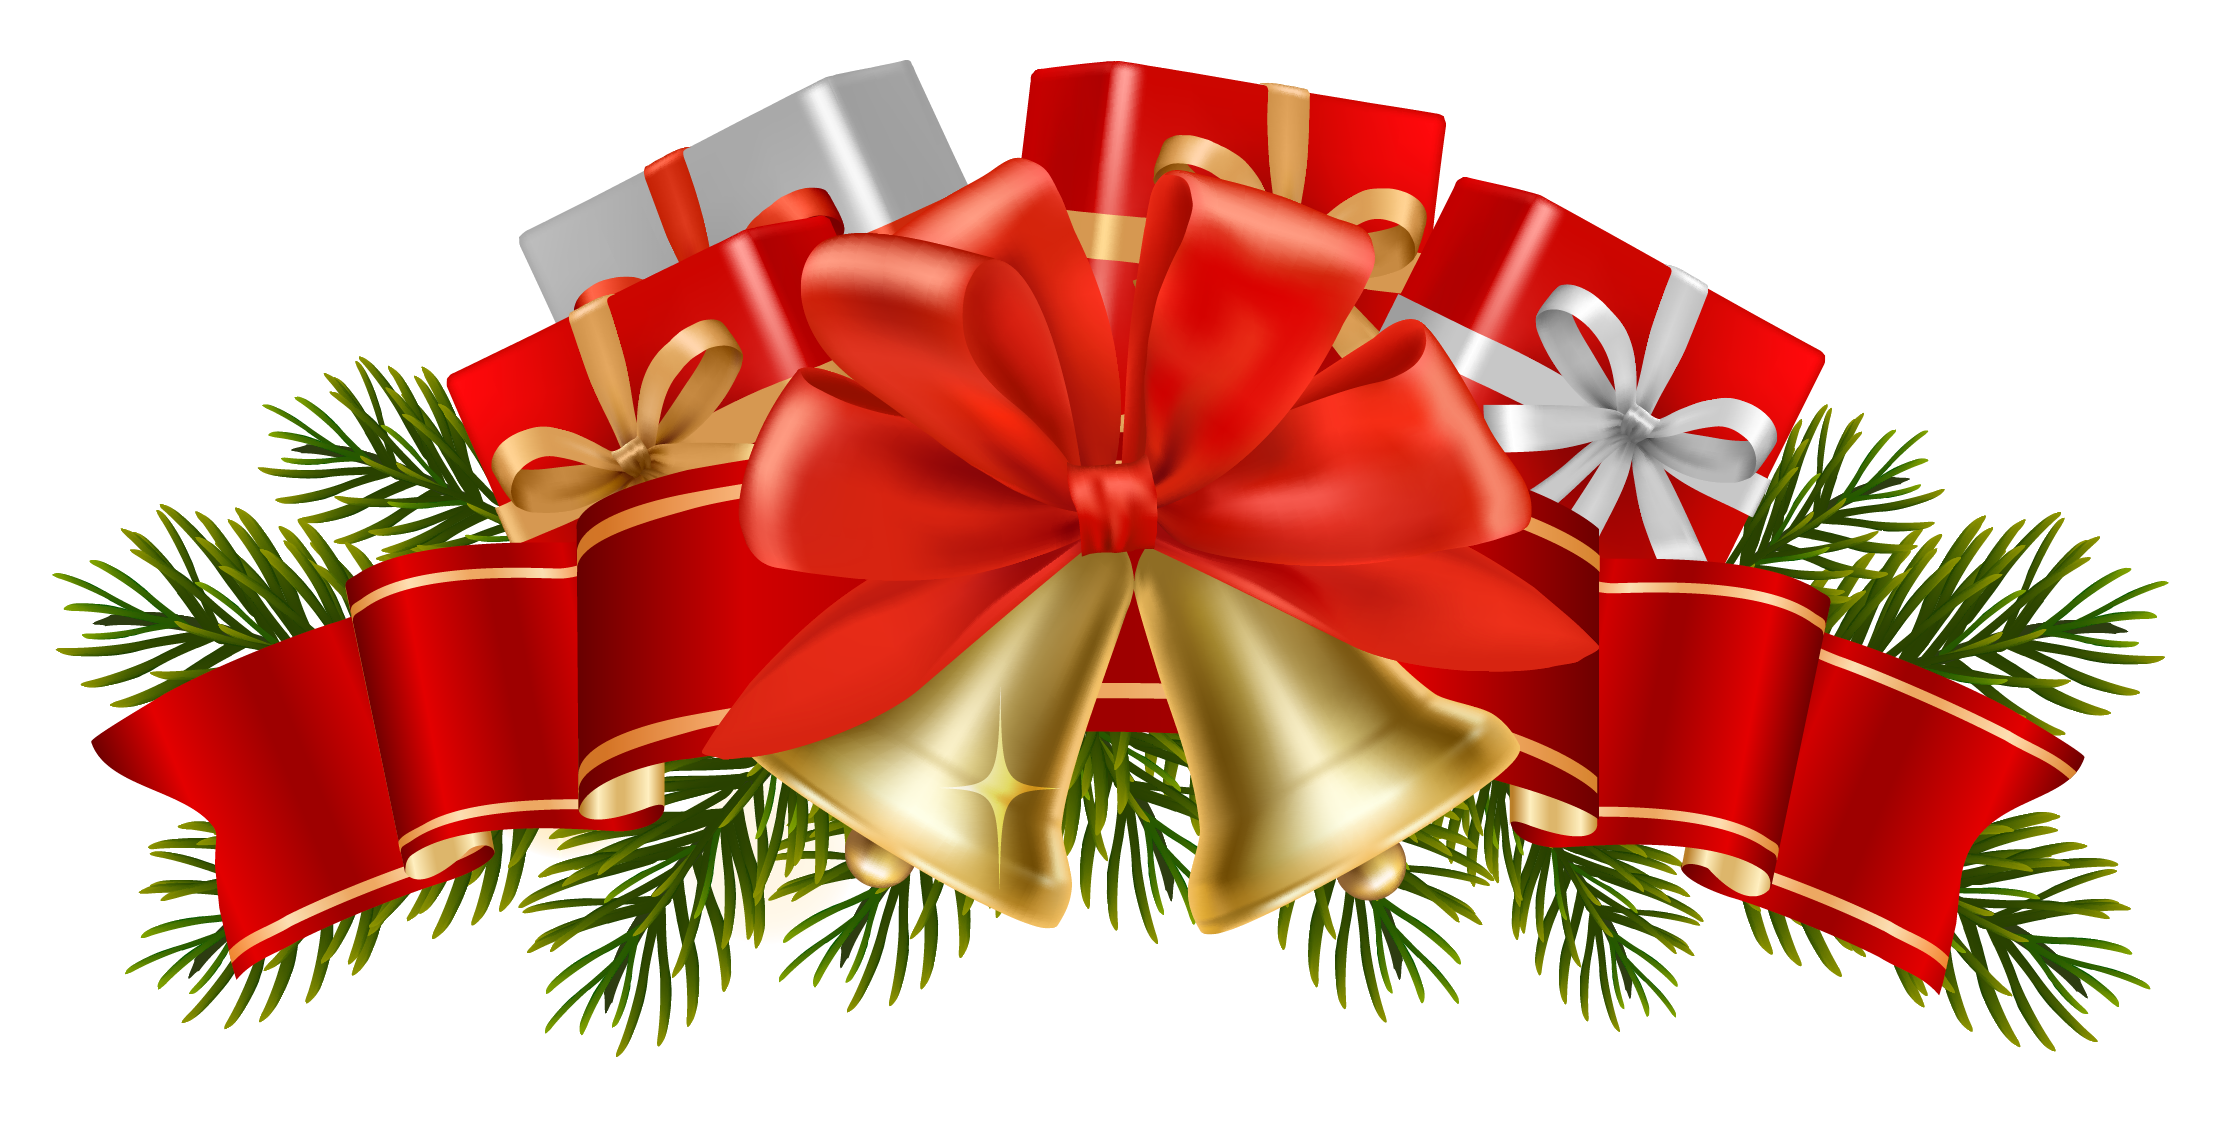 17 Christmas Bells Clip Art Pictures | Merry Christmas - Christmas Bell PNG